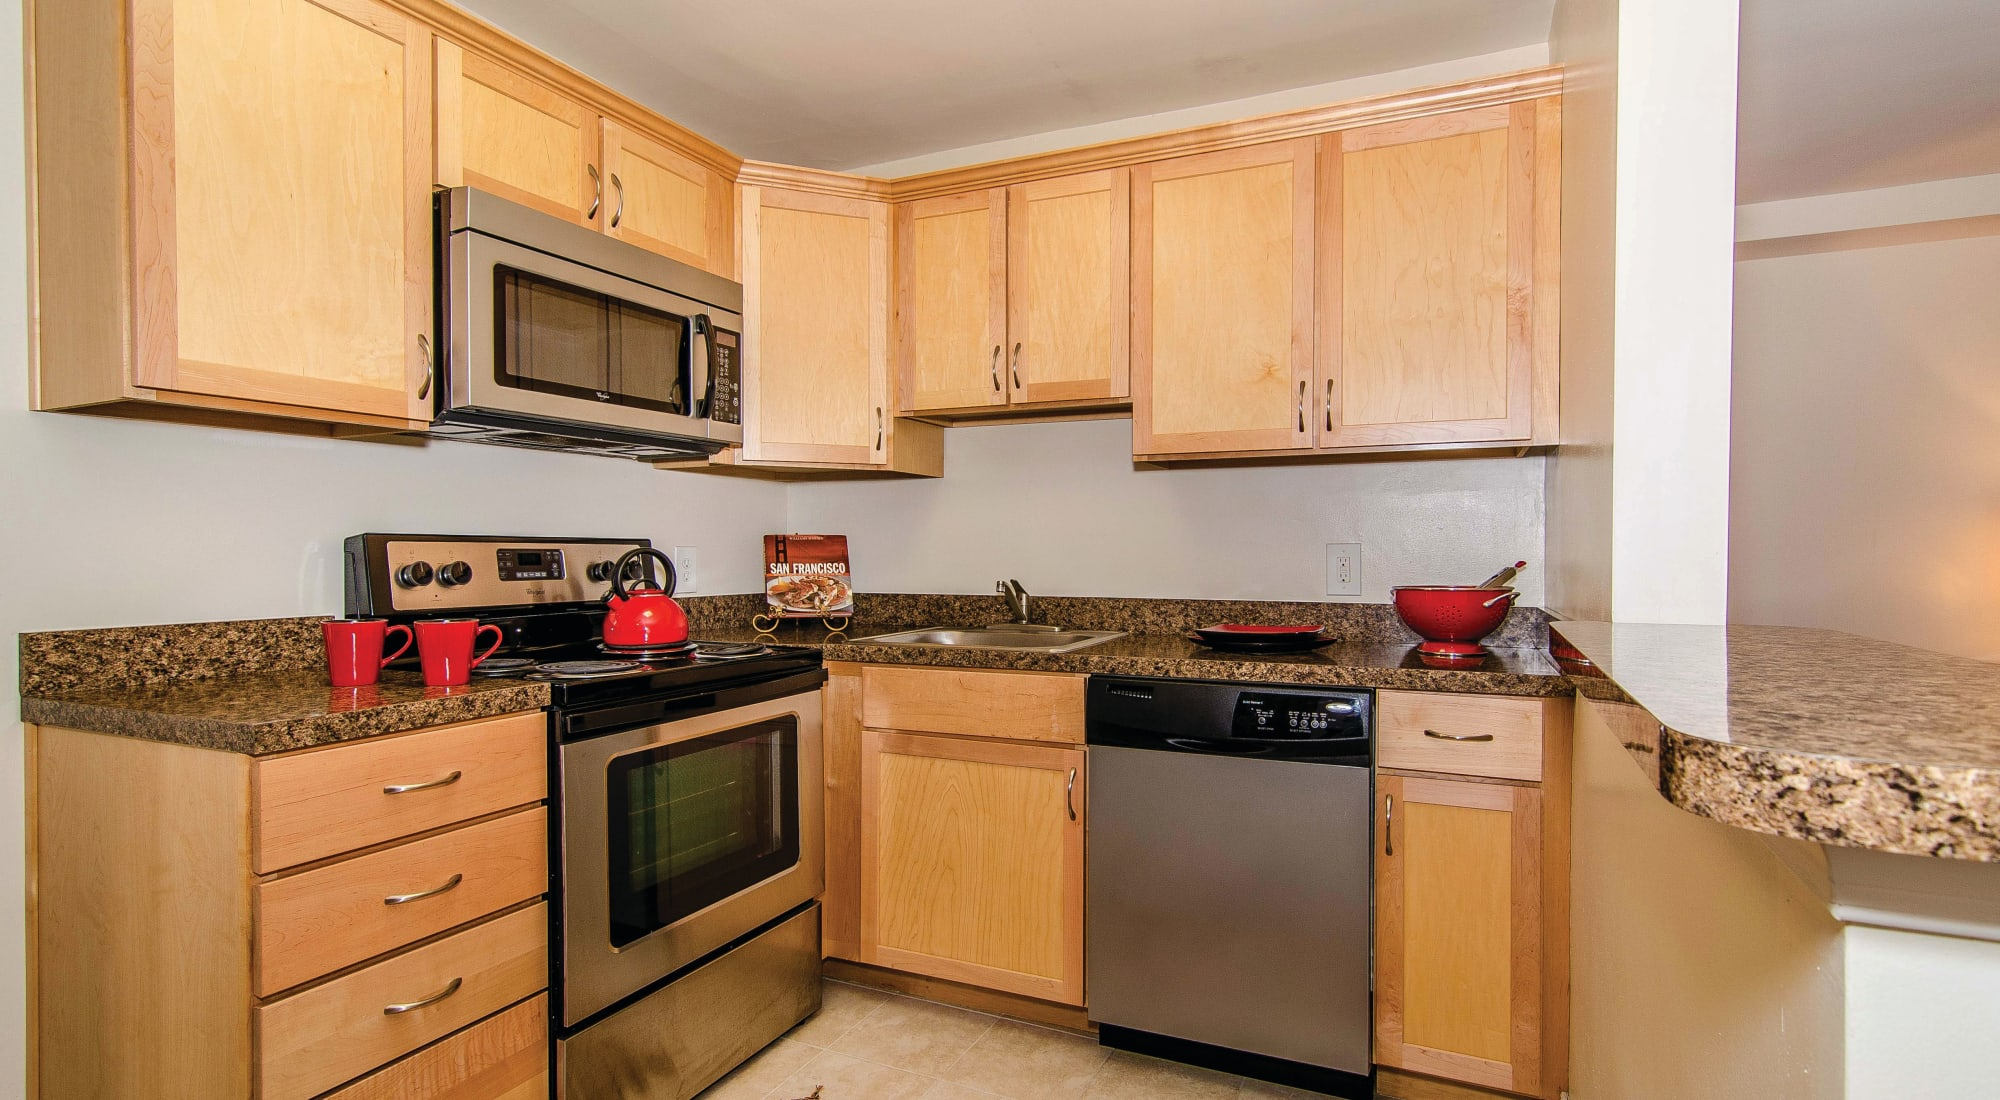 Amenities at Ridley Brook Apartments in Folsom, Pennsylvania